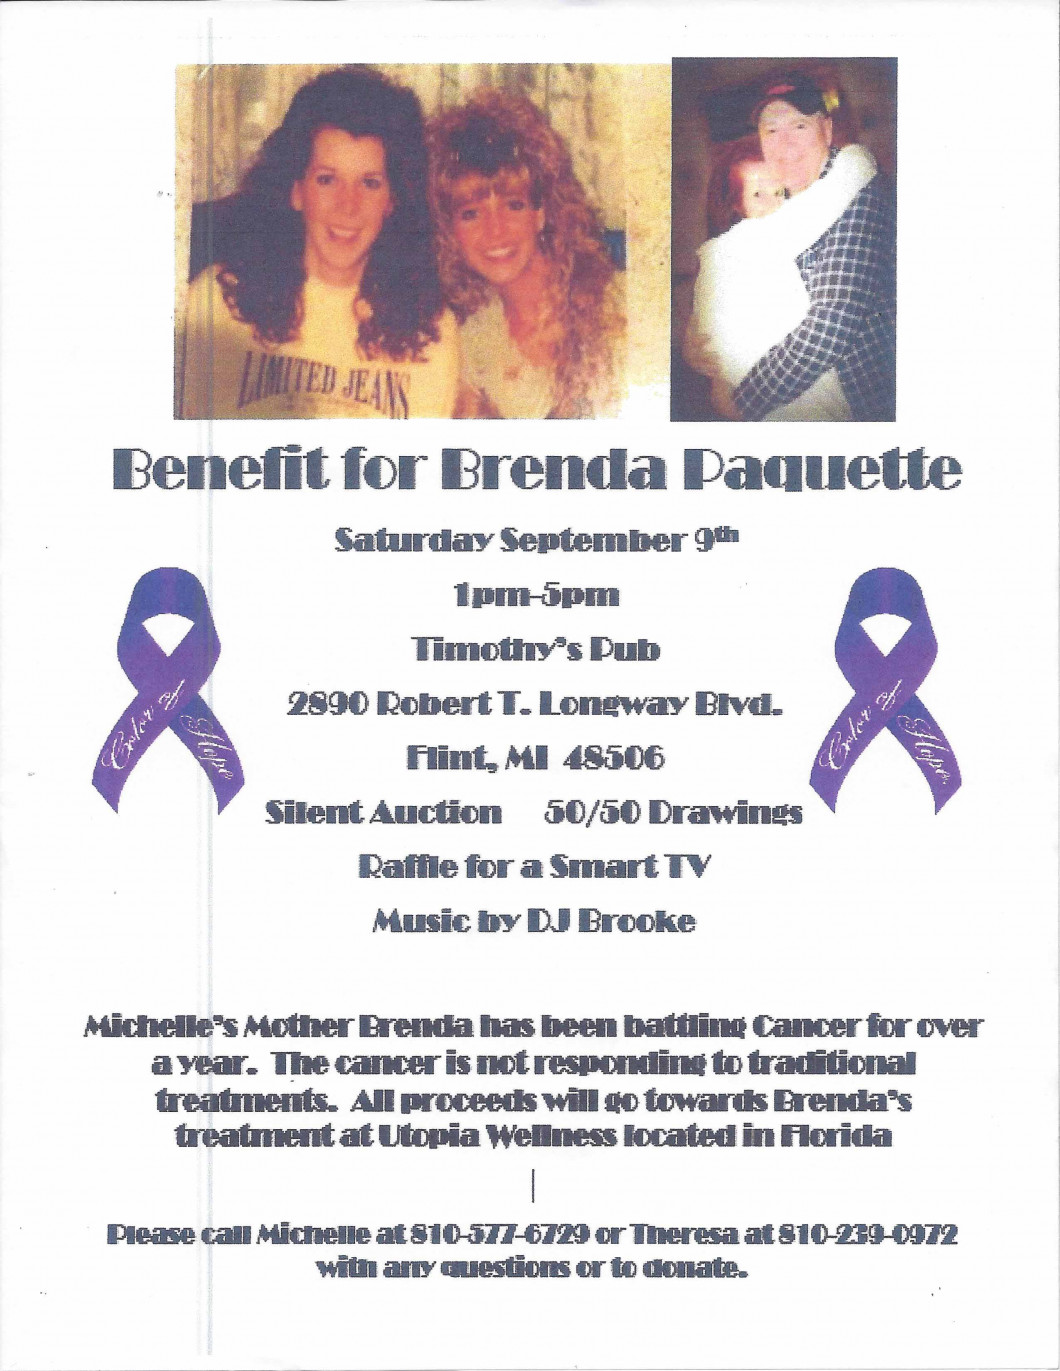 Benefit for Brenda Paquette